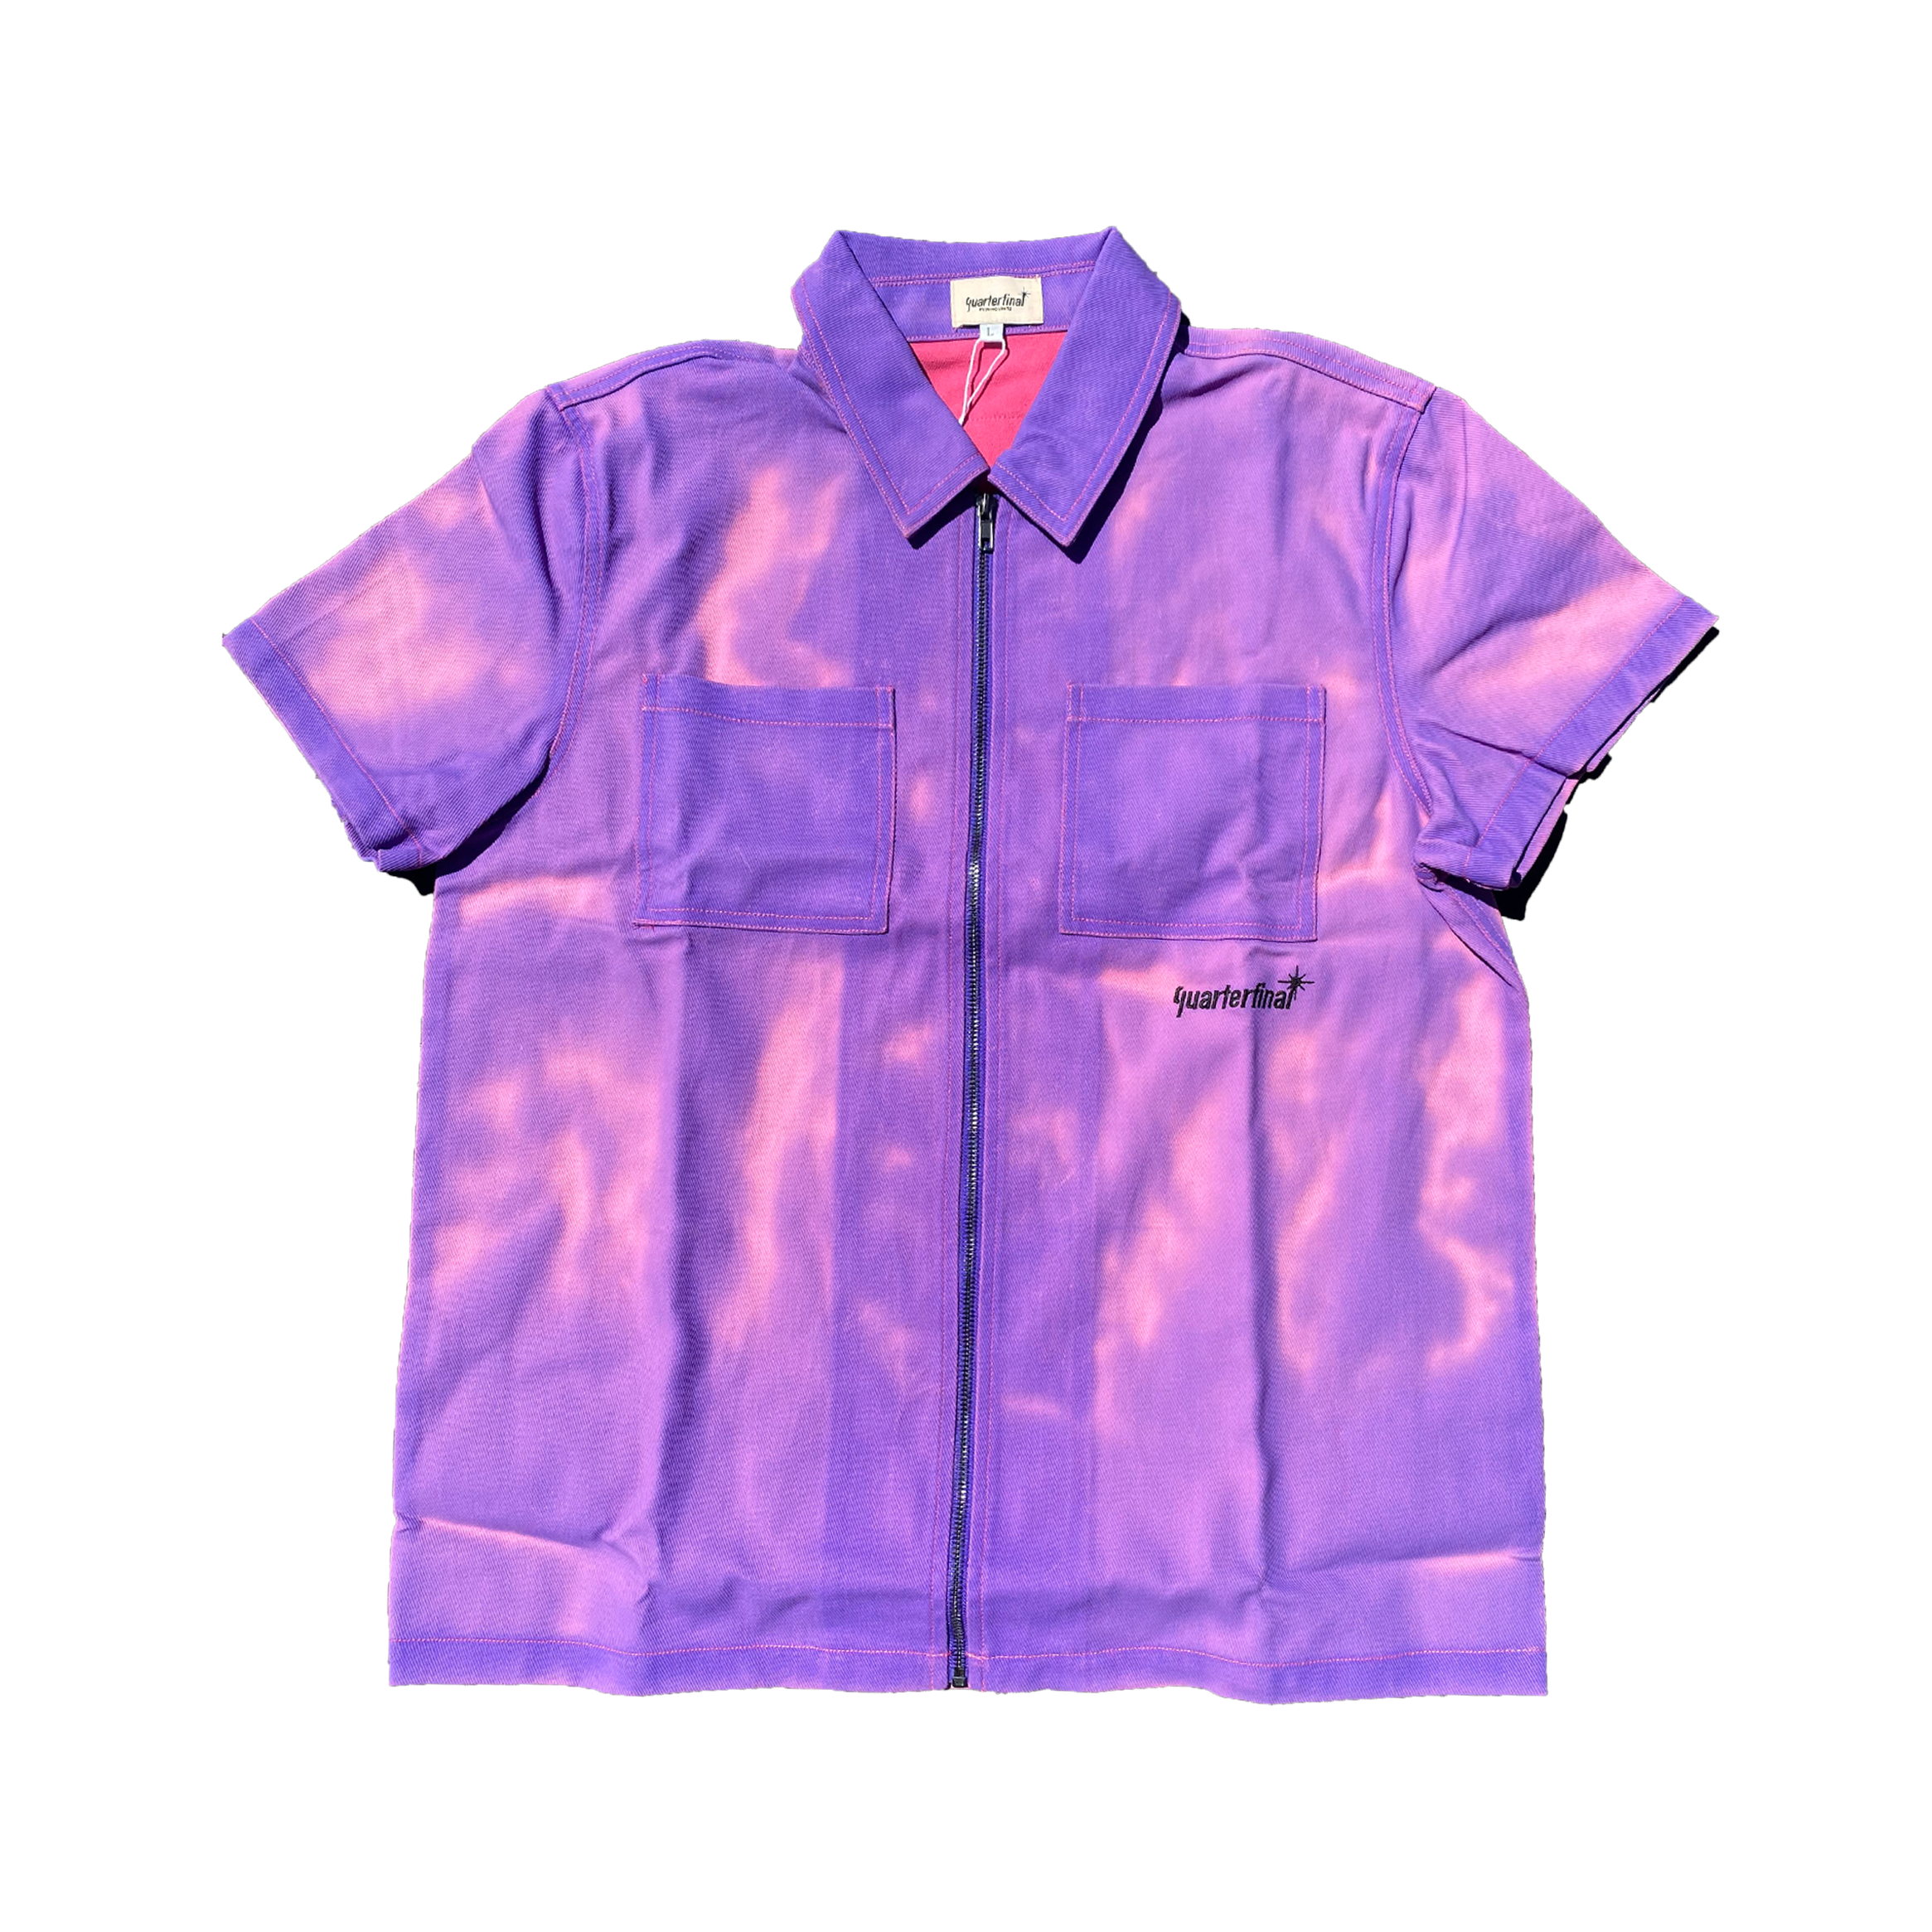 QTFL HEAT SENSITIVE ZIP-UP SHIRT